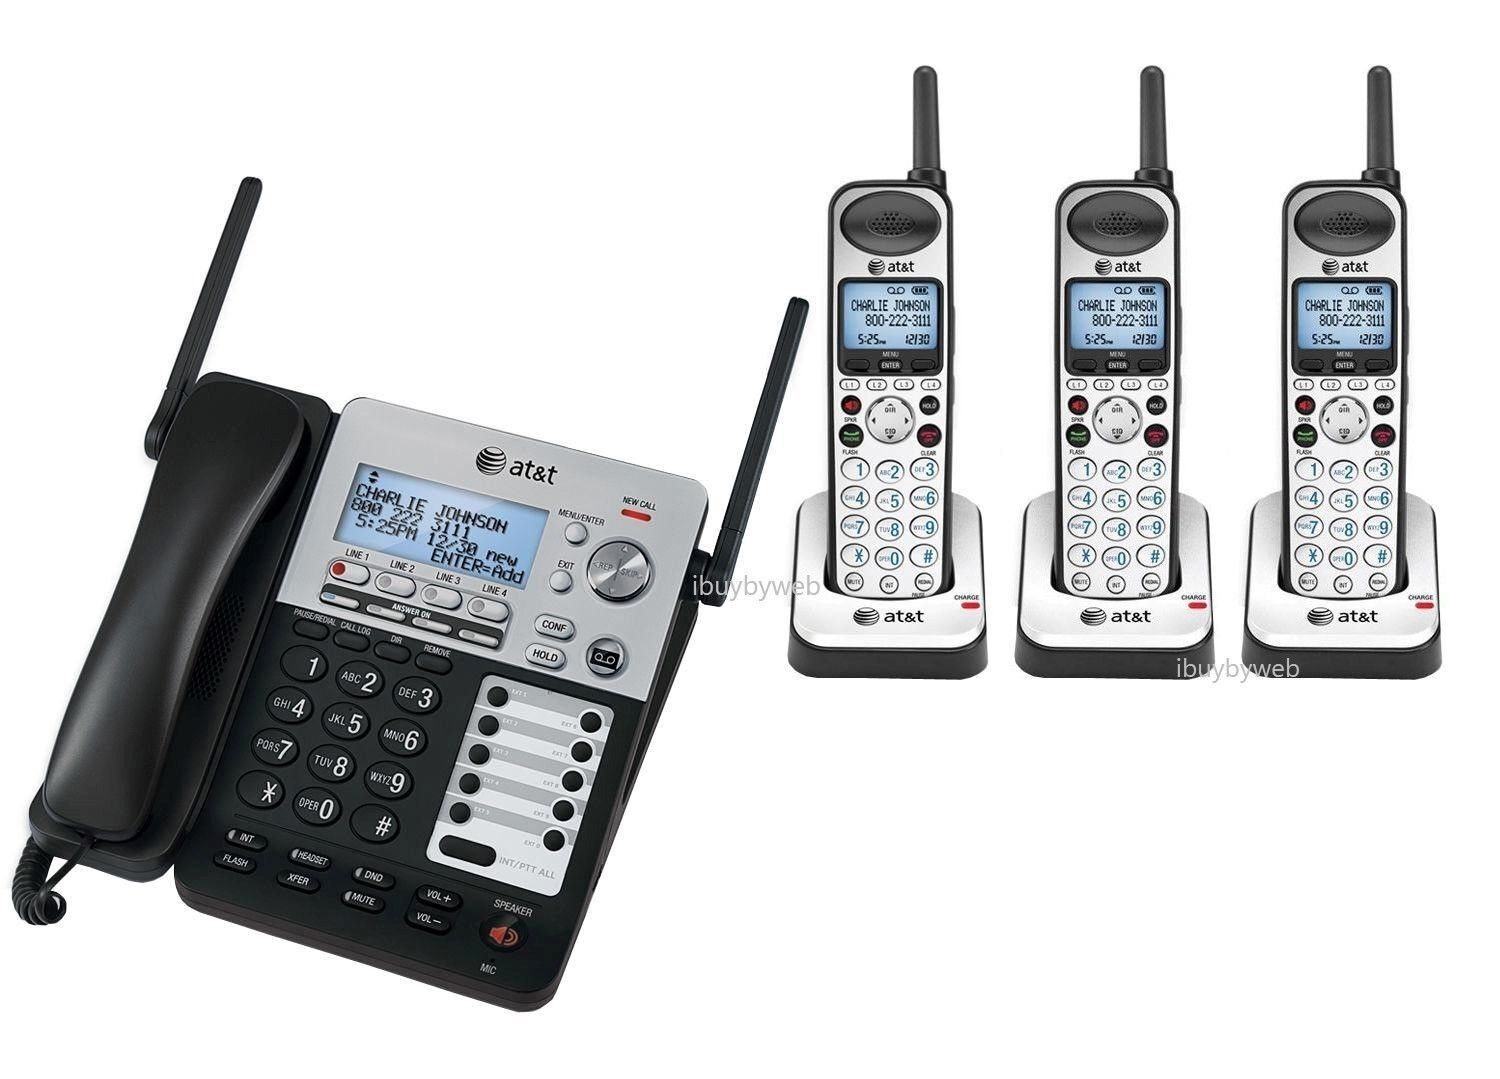 81585bd4cd4 Details about AT T SB67138 DECT 6.0 4 Line 1 Corded 3 Cordless Business  Phones w Music on Hold